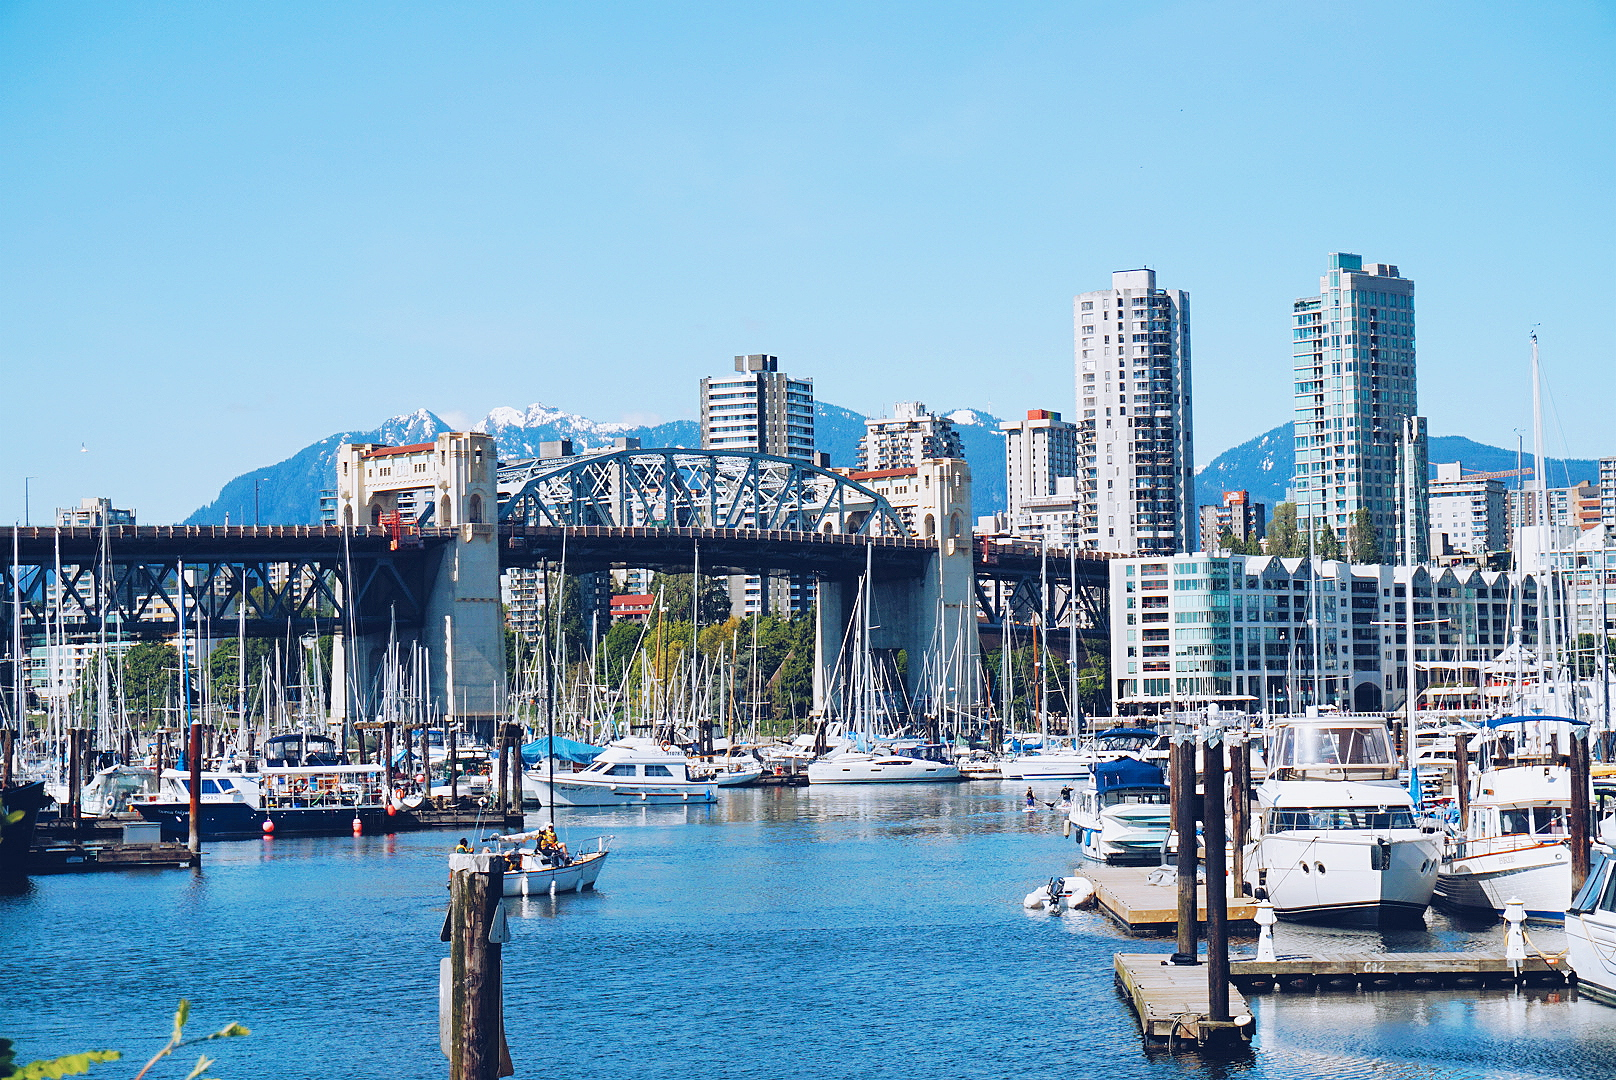 Picture-perfect Vancouver, BC, with boats in a marina, skyscrapers and snowy mountains as a backdrop.